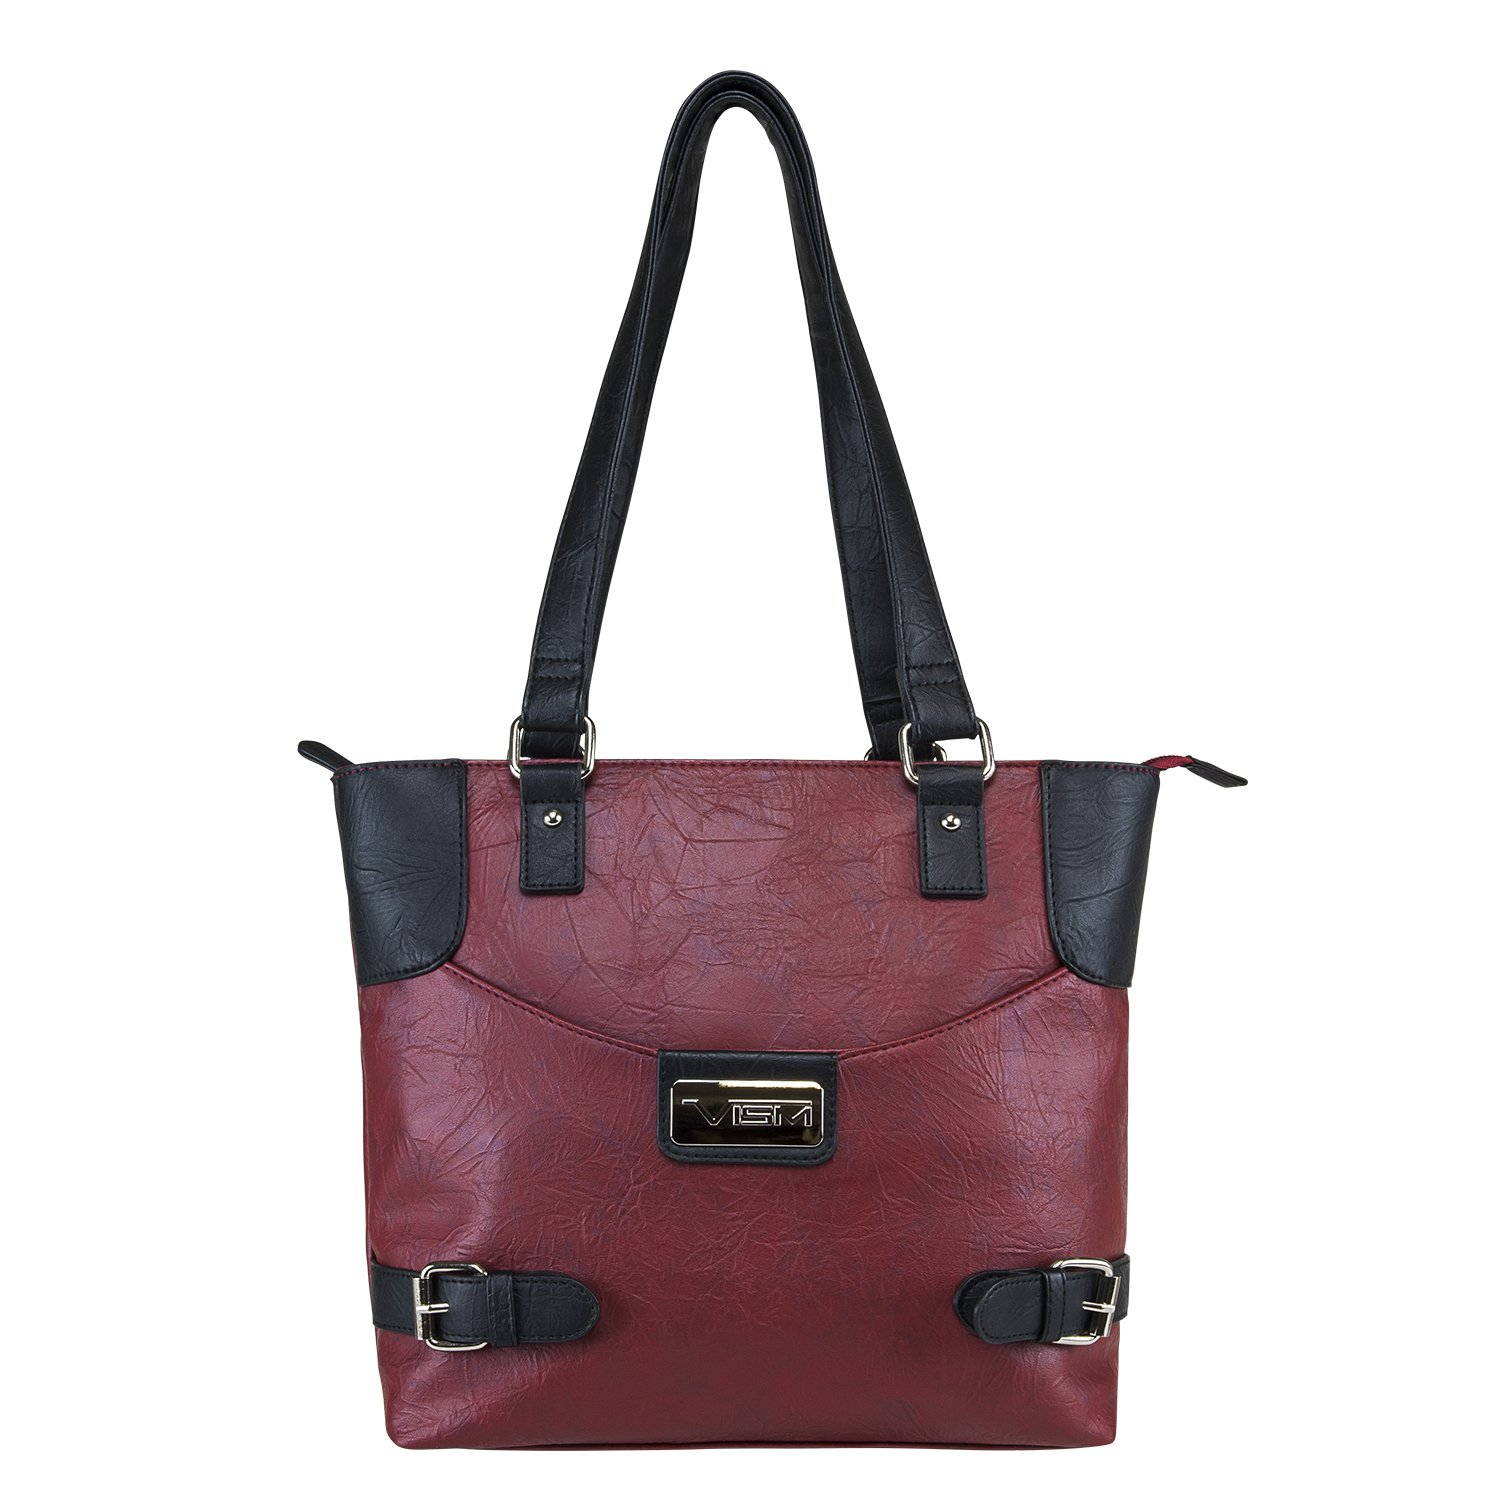 Concealed Carry Purse - Conceal Double Buckle Tote by VISM